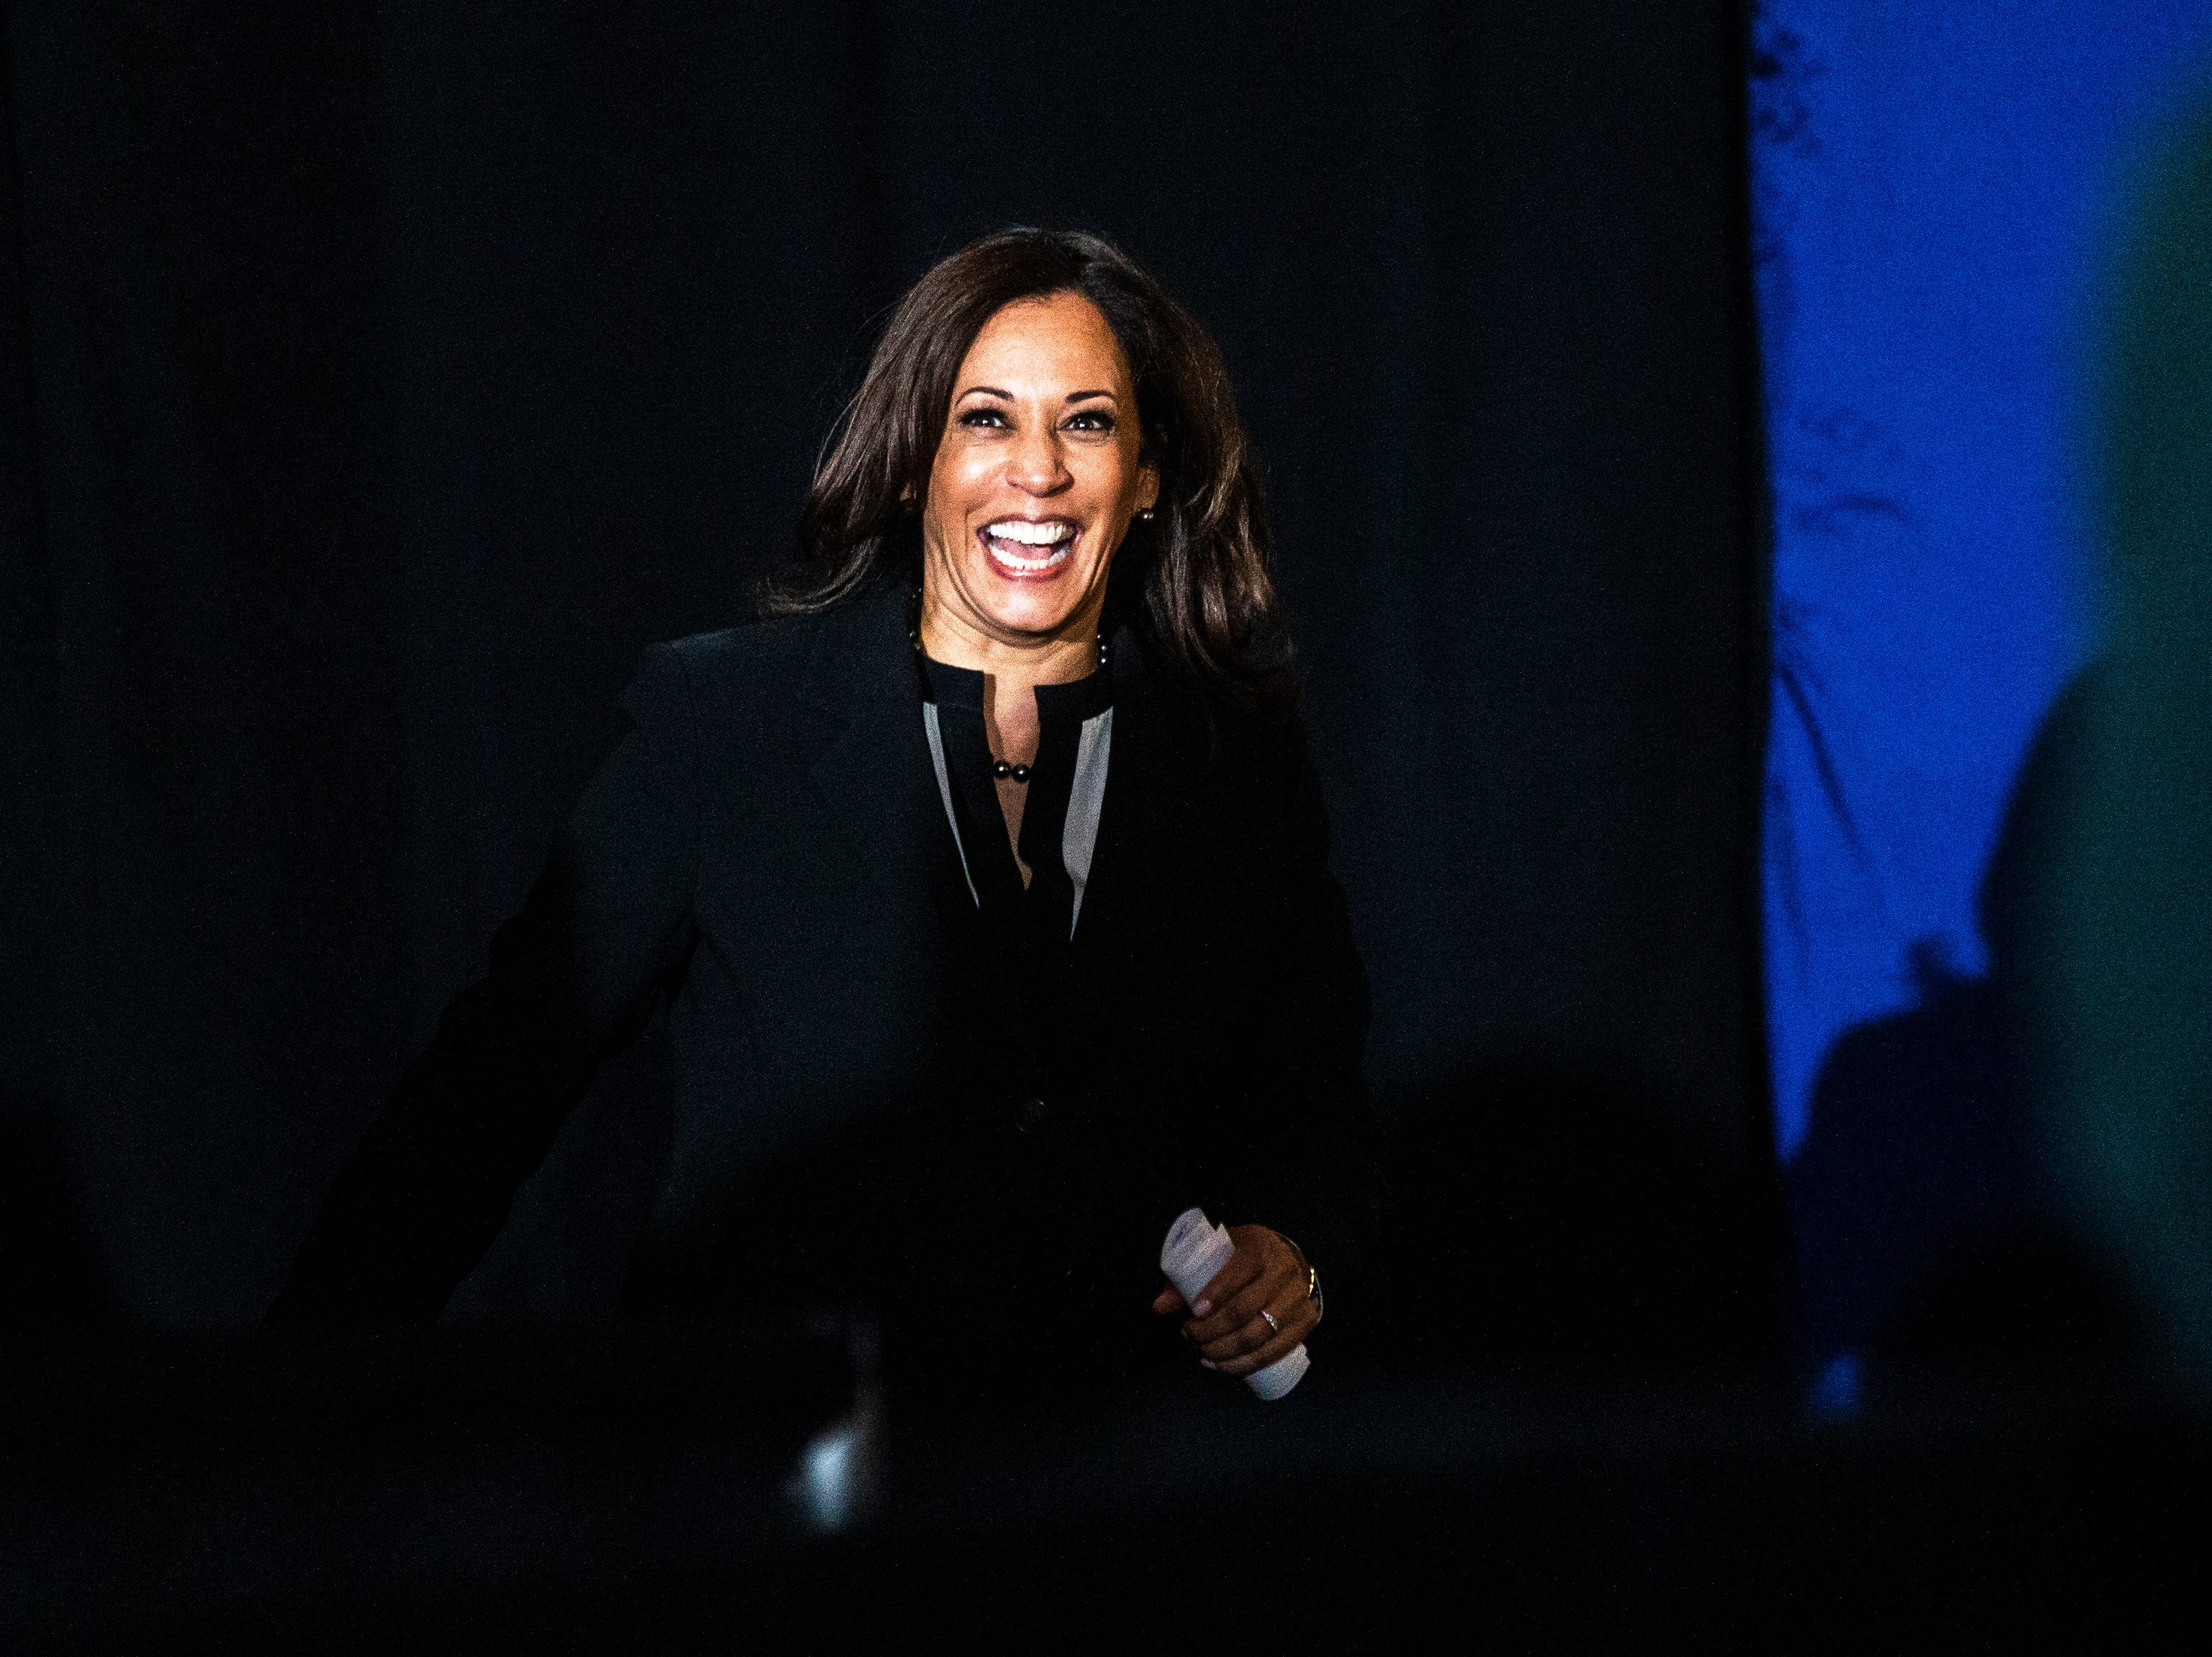 U.S. Sen. Kamala Harris, D-Calif., is introduced during a town hall event on Wednesday, April 10, 2019, at the Iowa Memorial Union main lounge in Iowa City, Iowa.